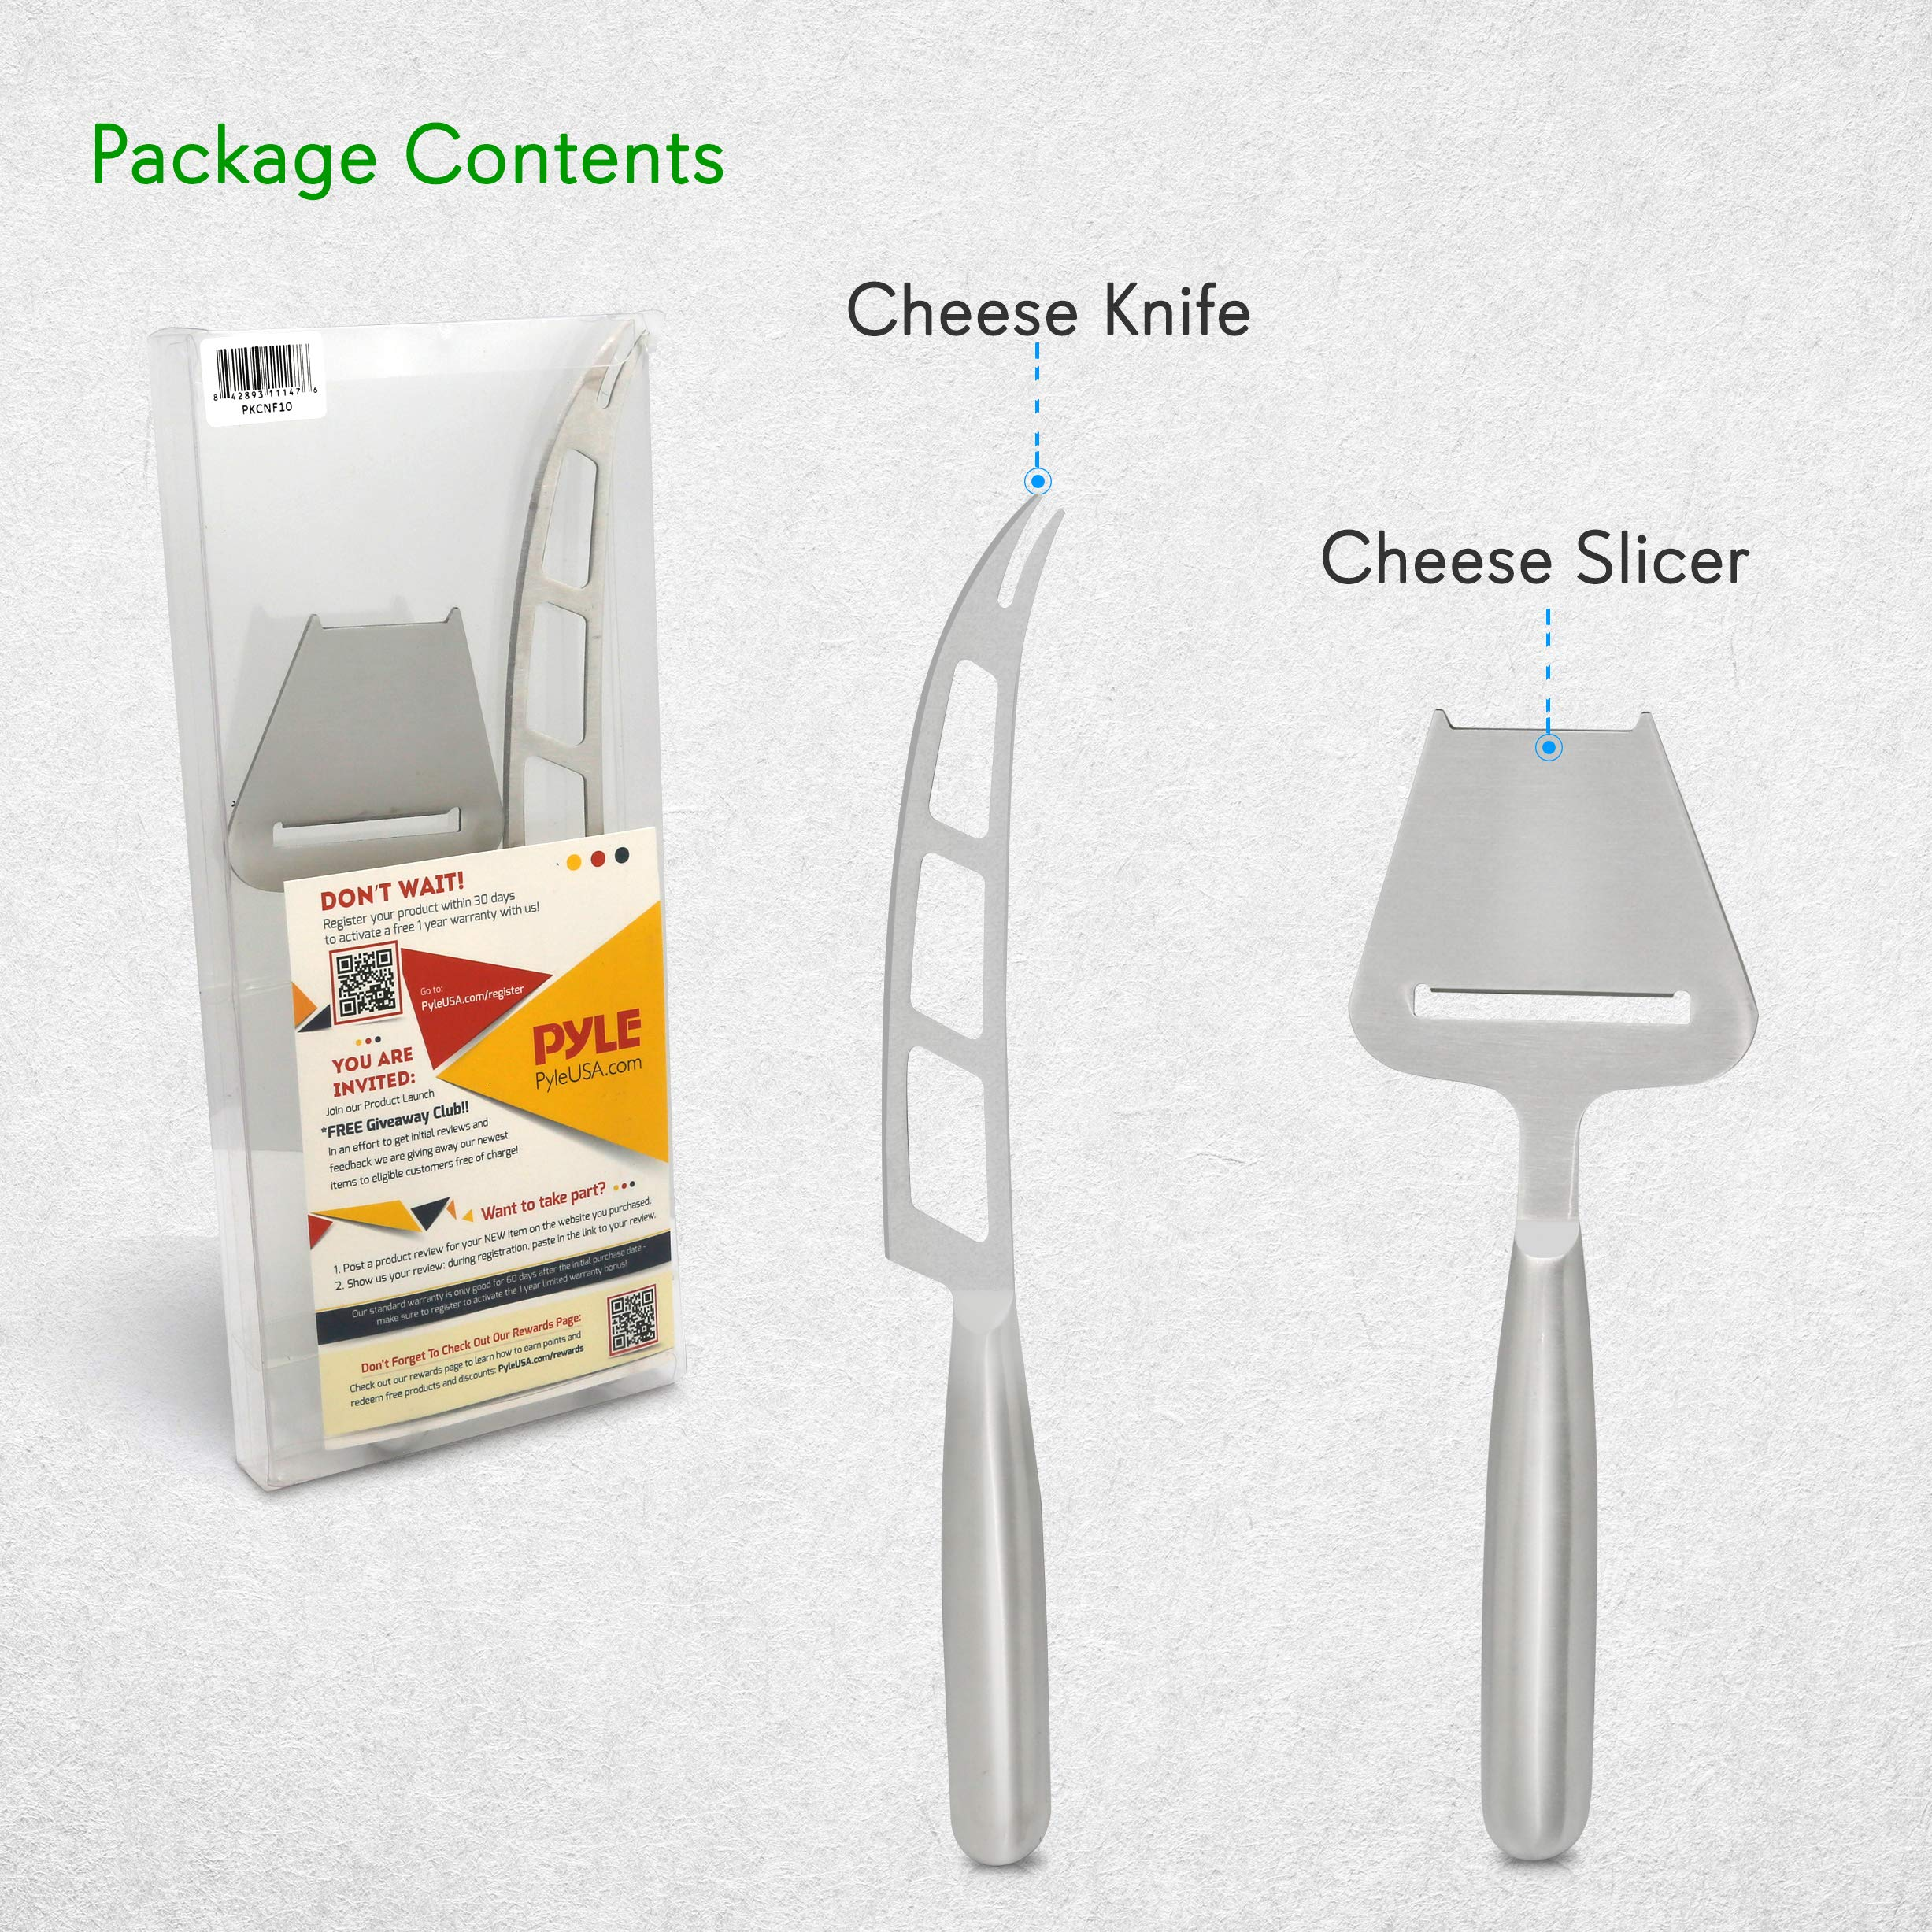 2 Piece Cheese Cutting Set - Portable Fancy Stainless Steel Non Stick Cheese Cutter Knife and Cheese Slicer - Cut, Shave, Slice, Serve, Spread - Gouda Blue Brie Parmesan Cheddar - NutriChef PKCNF10 by Nutrichef (Image #8)